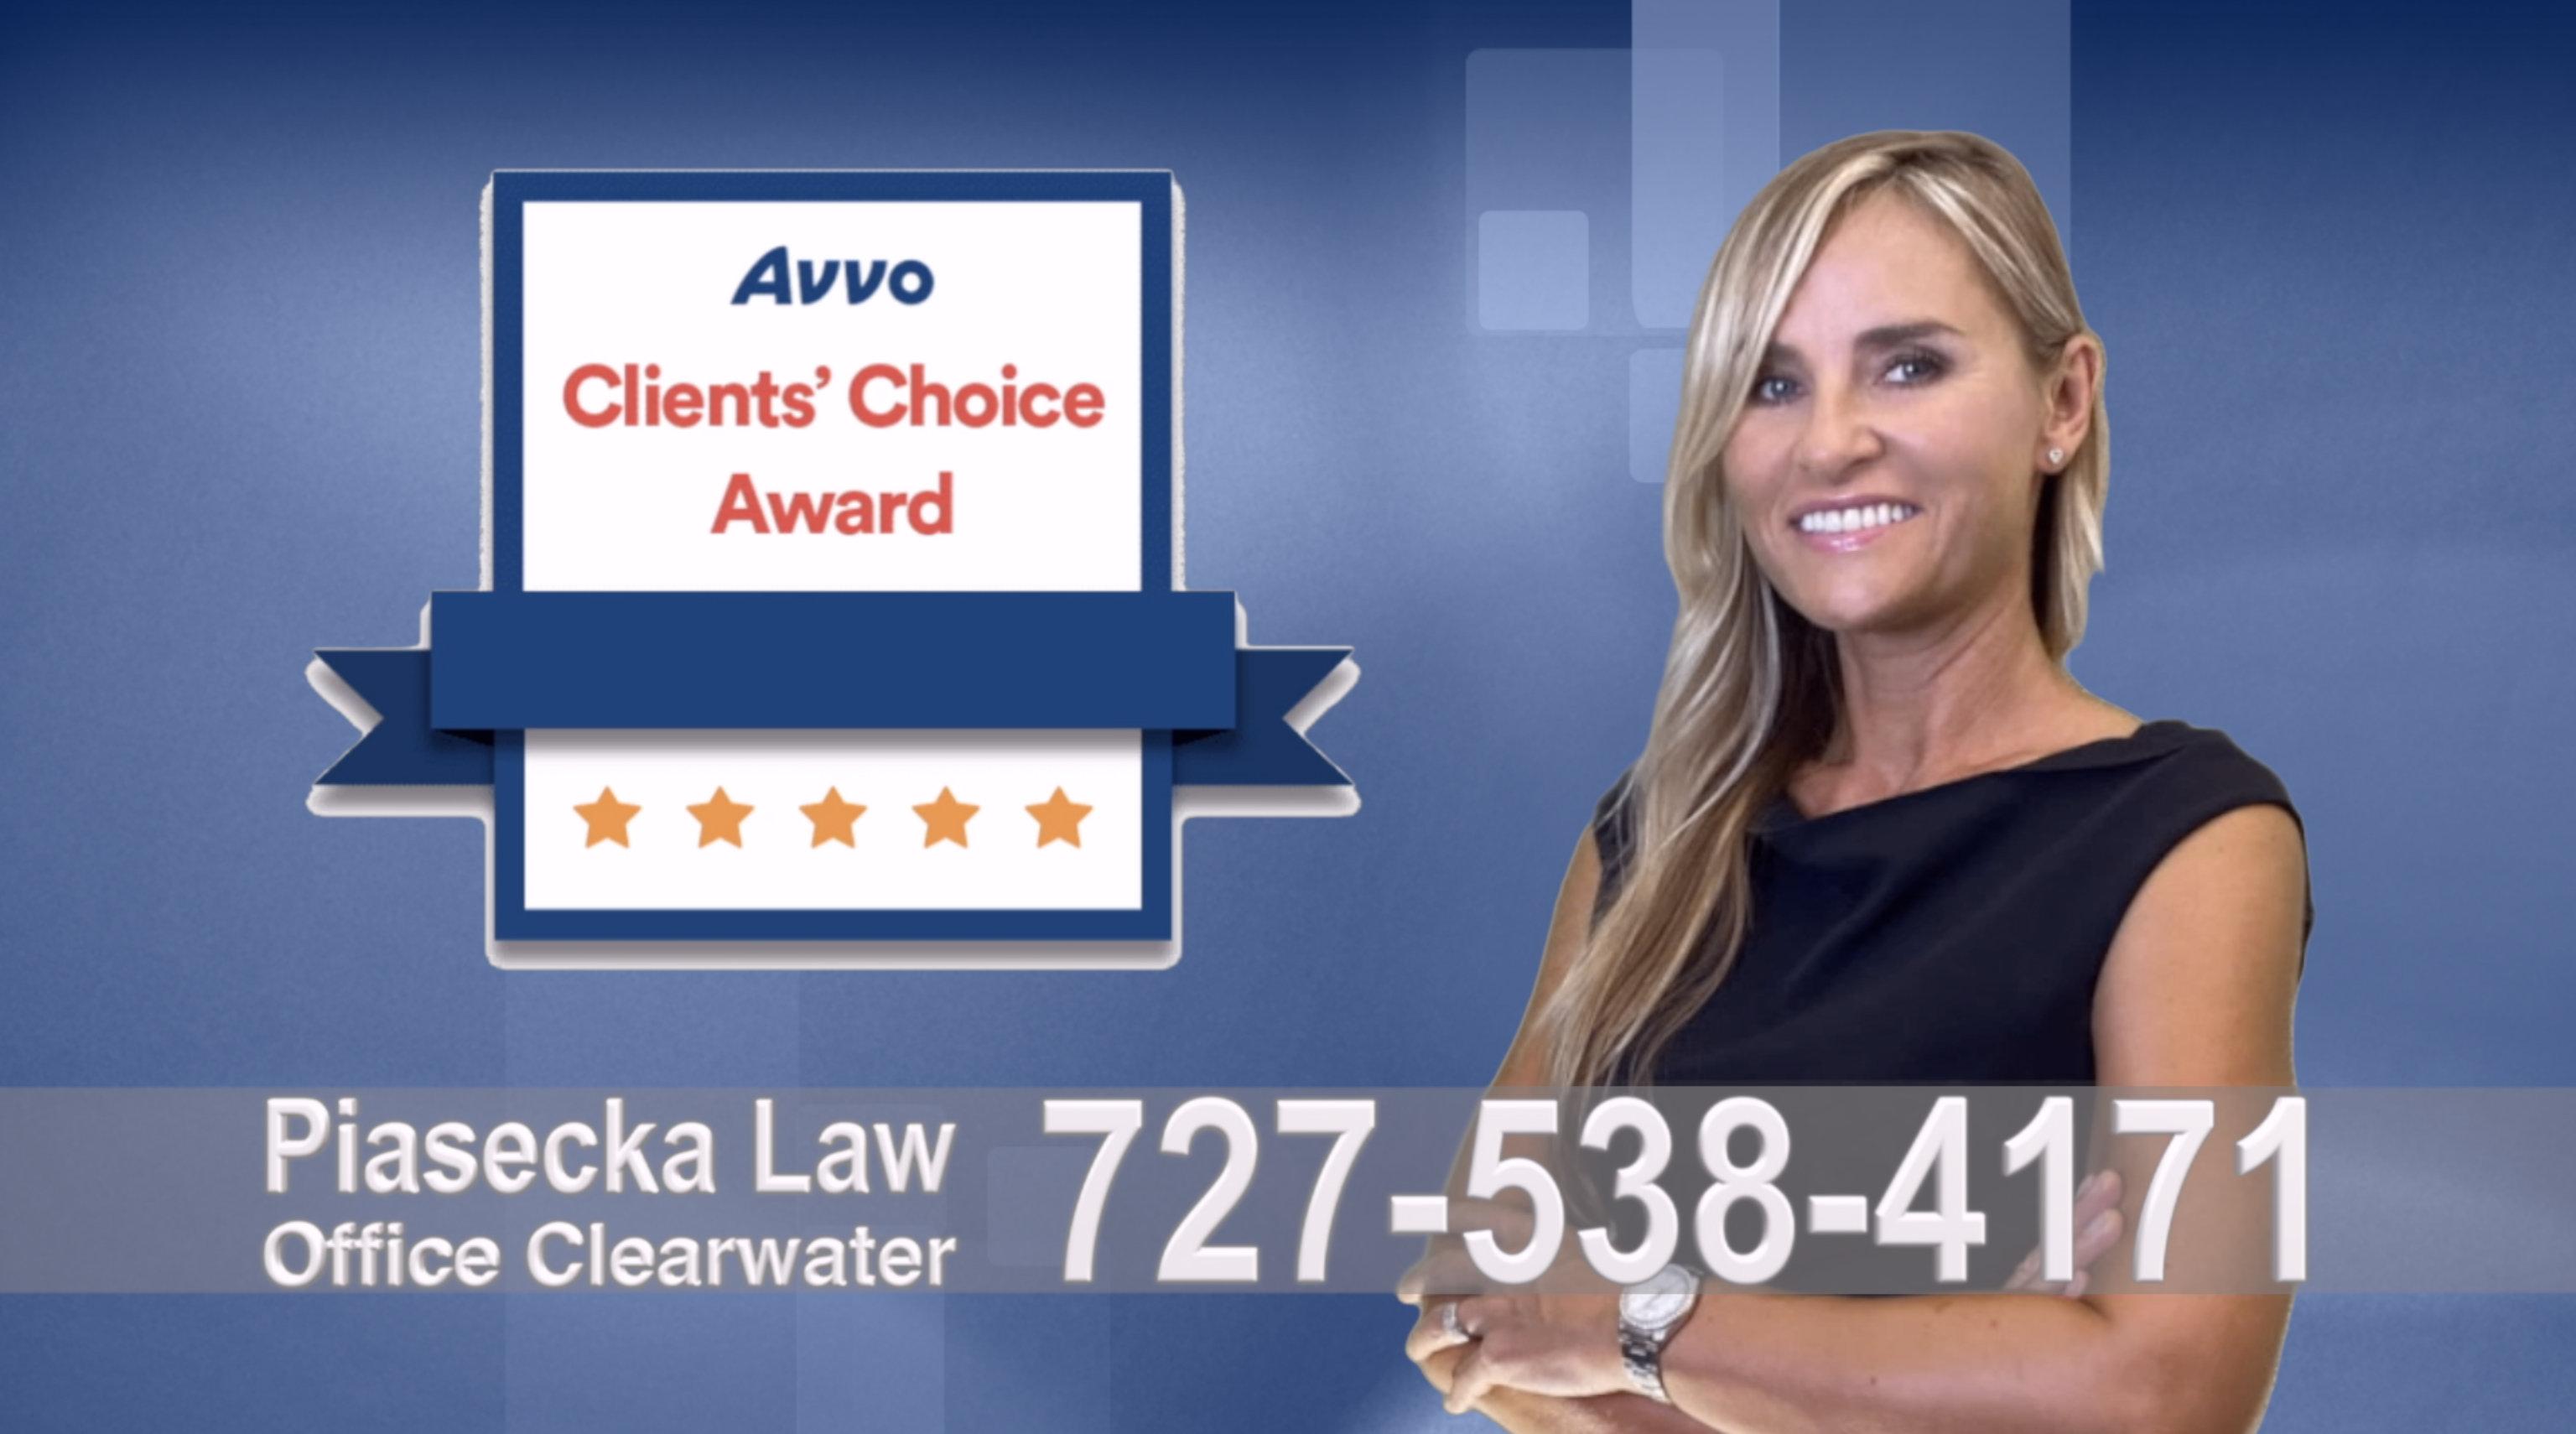 Avvo, Clients, Choice Award, Reviews, Opinie, Agnieszka, Aga, Piasecka, Polish, Lawyer, Attorney, Opinie klientów, Best, Najlepszy, Polskojęzyczny, Prawnik, Polski, Adwokat, Florida, Floryda, USA 4